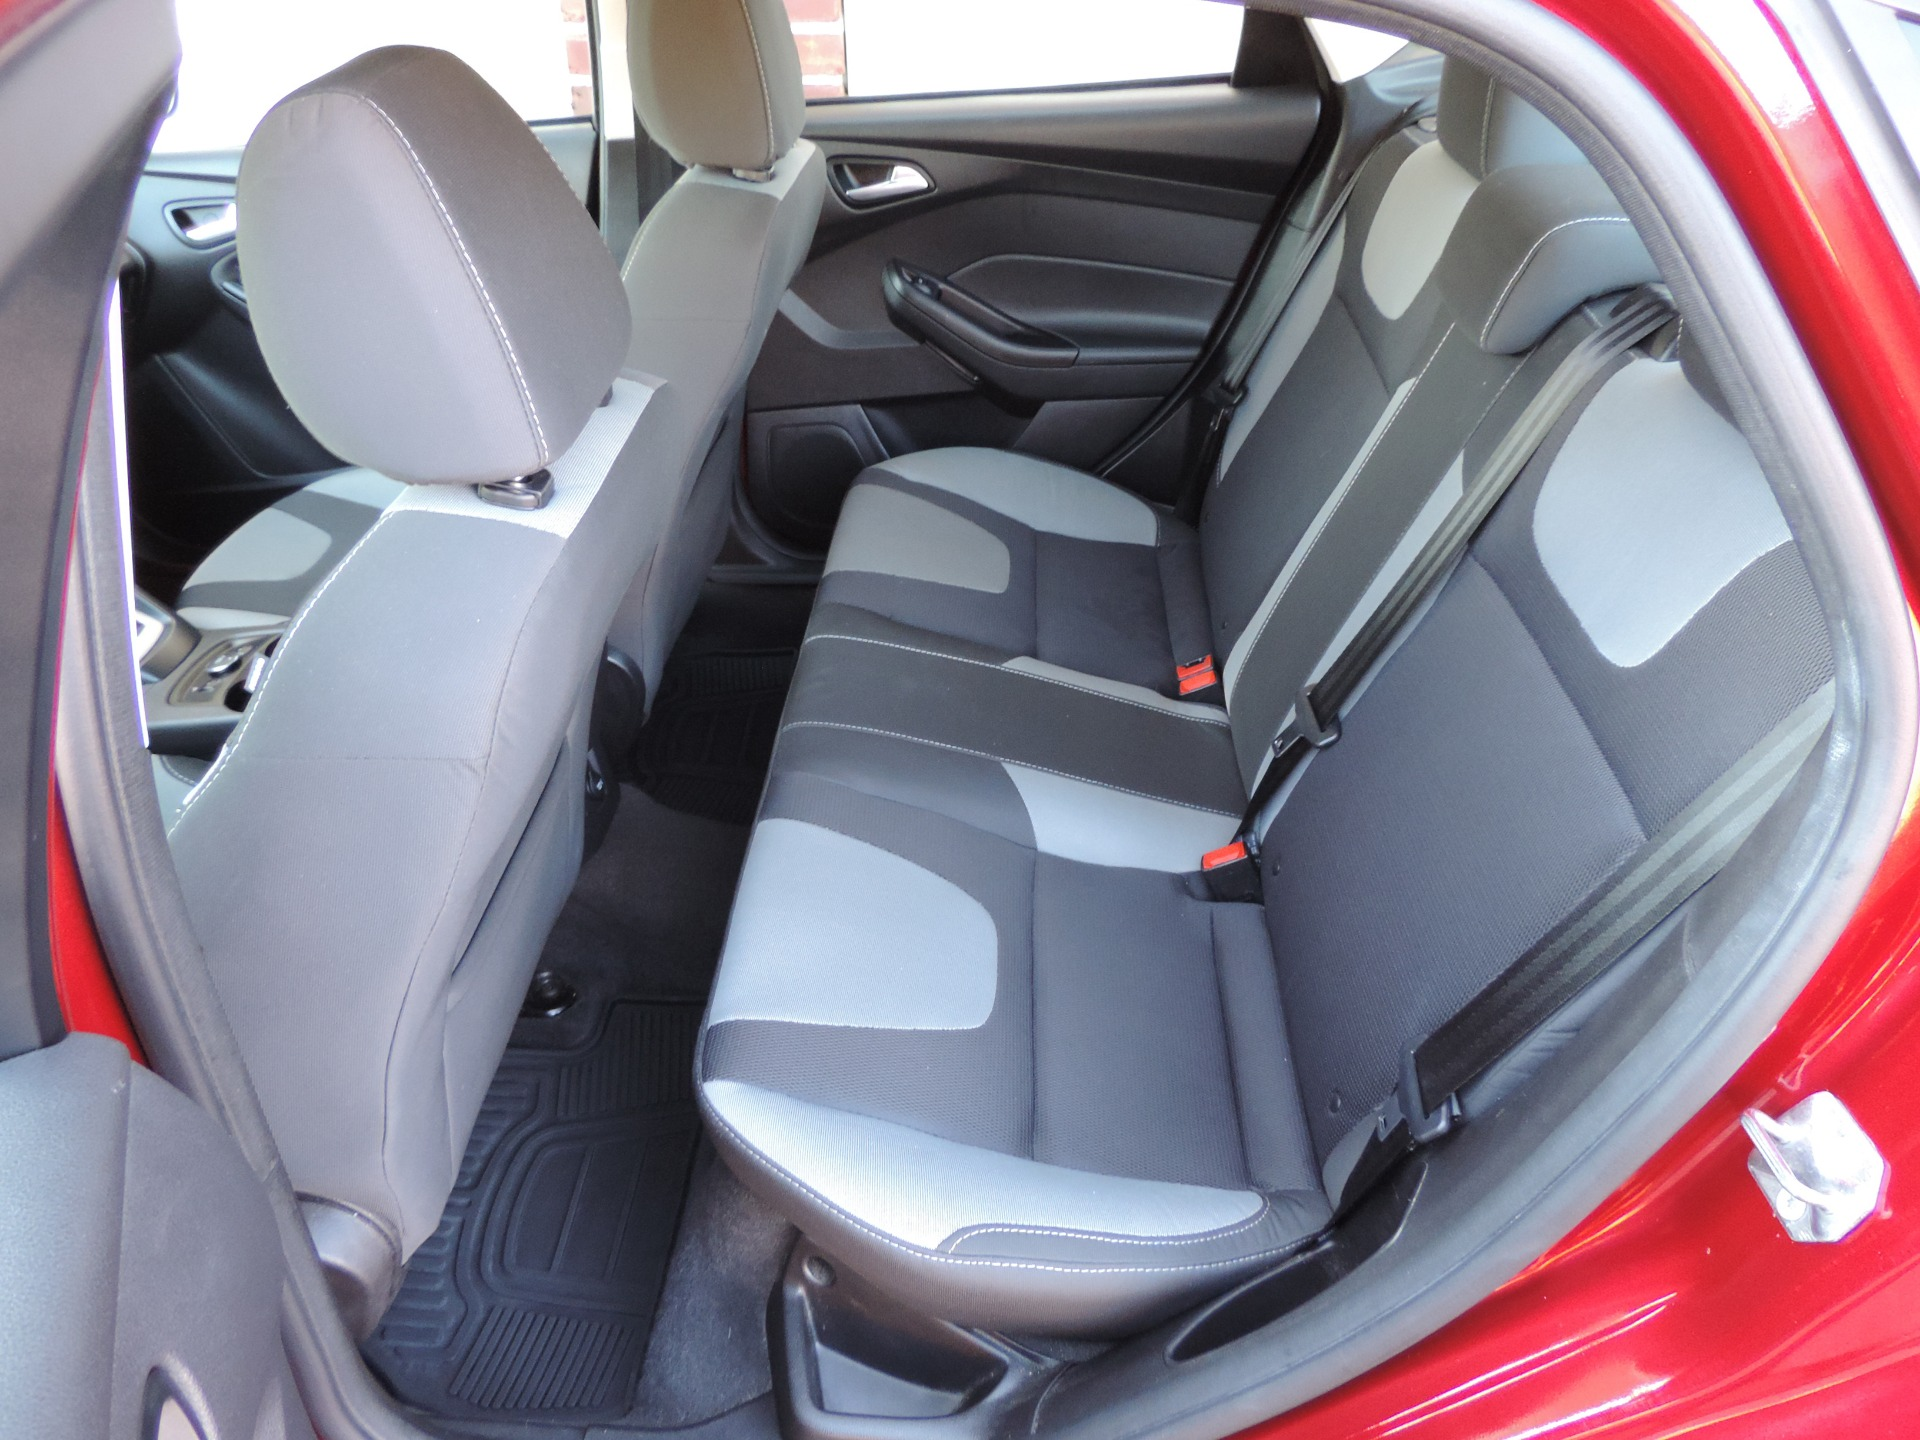 2014 Ford Focus Se Stock 366839 For Sale Near Edgewater Park Nj Seats Used